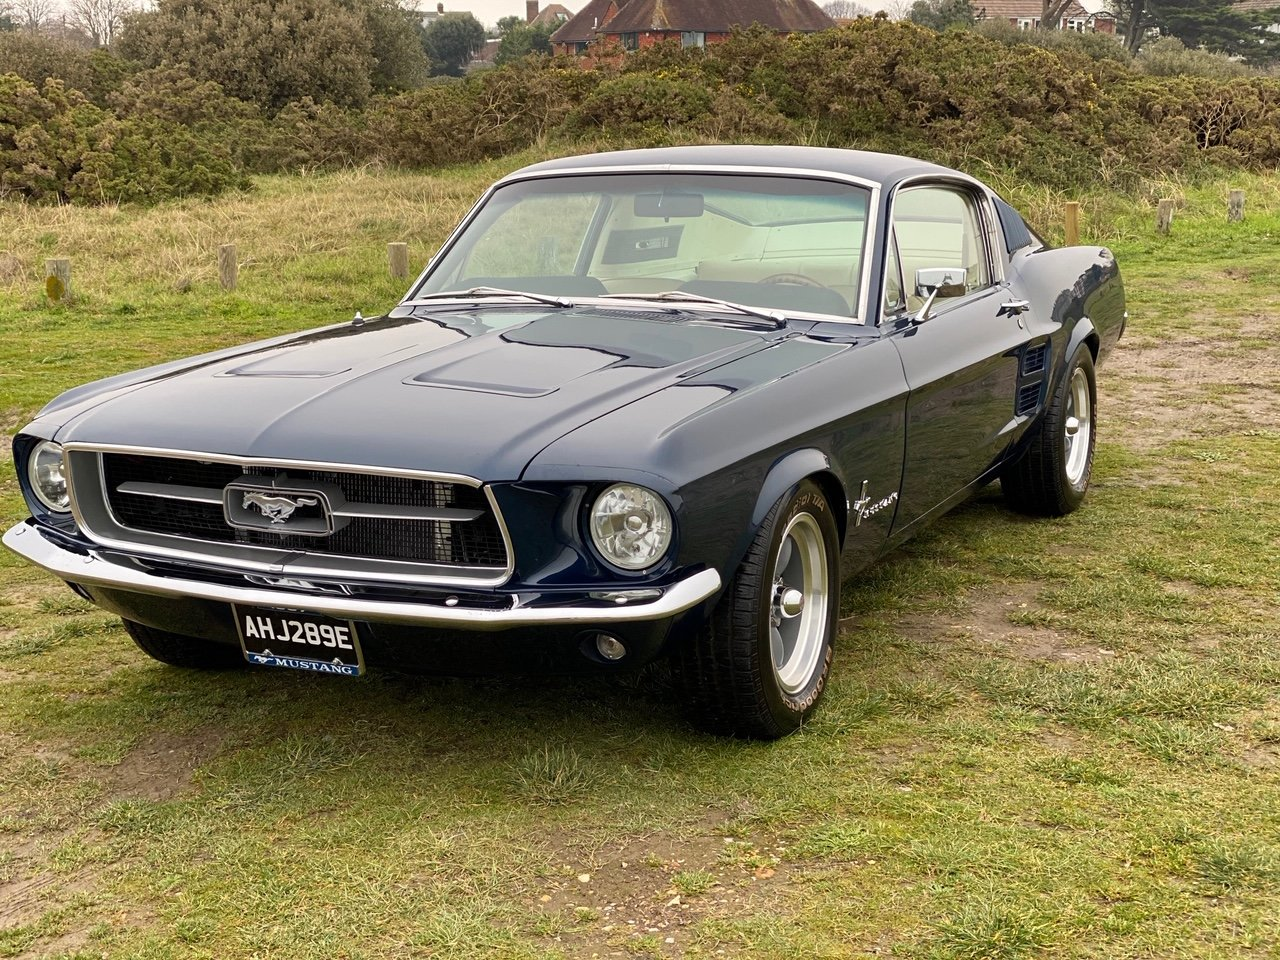 1967 Ford Mustang Fastback - Nightmist Blue For Sale (picture 1 of 6)